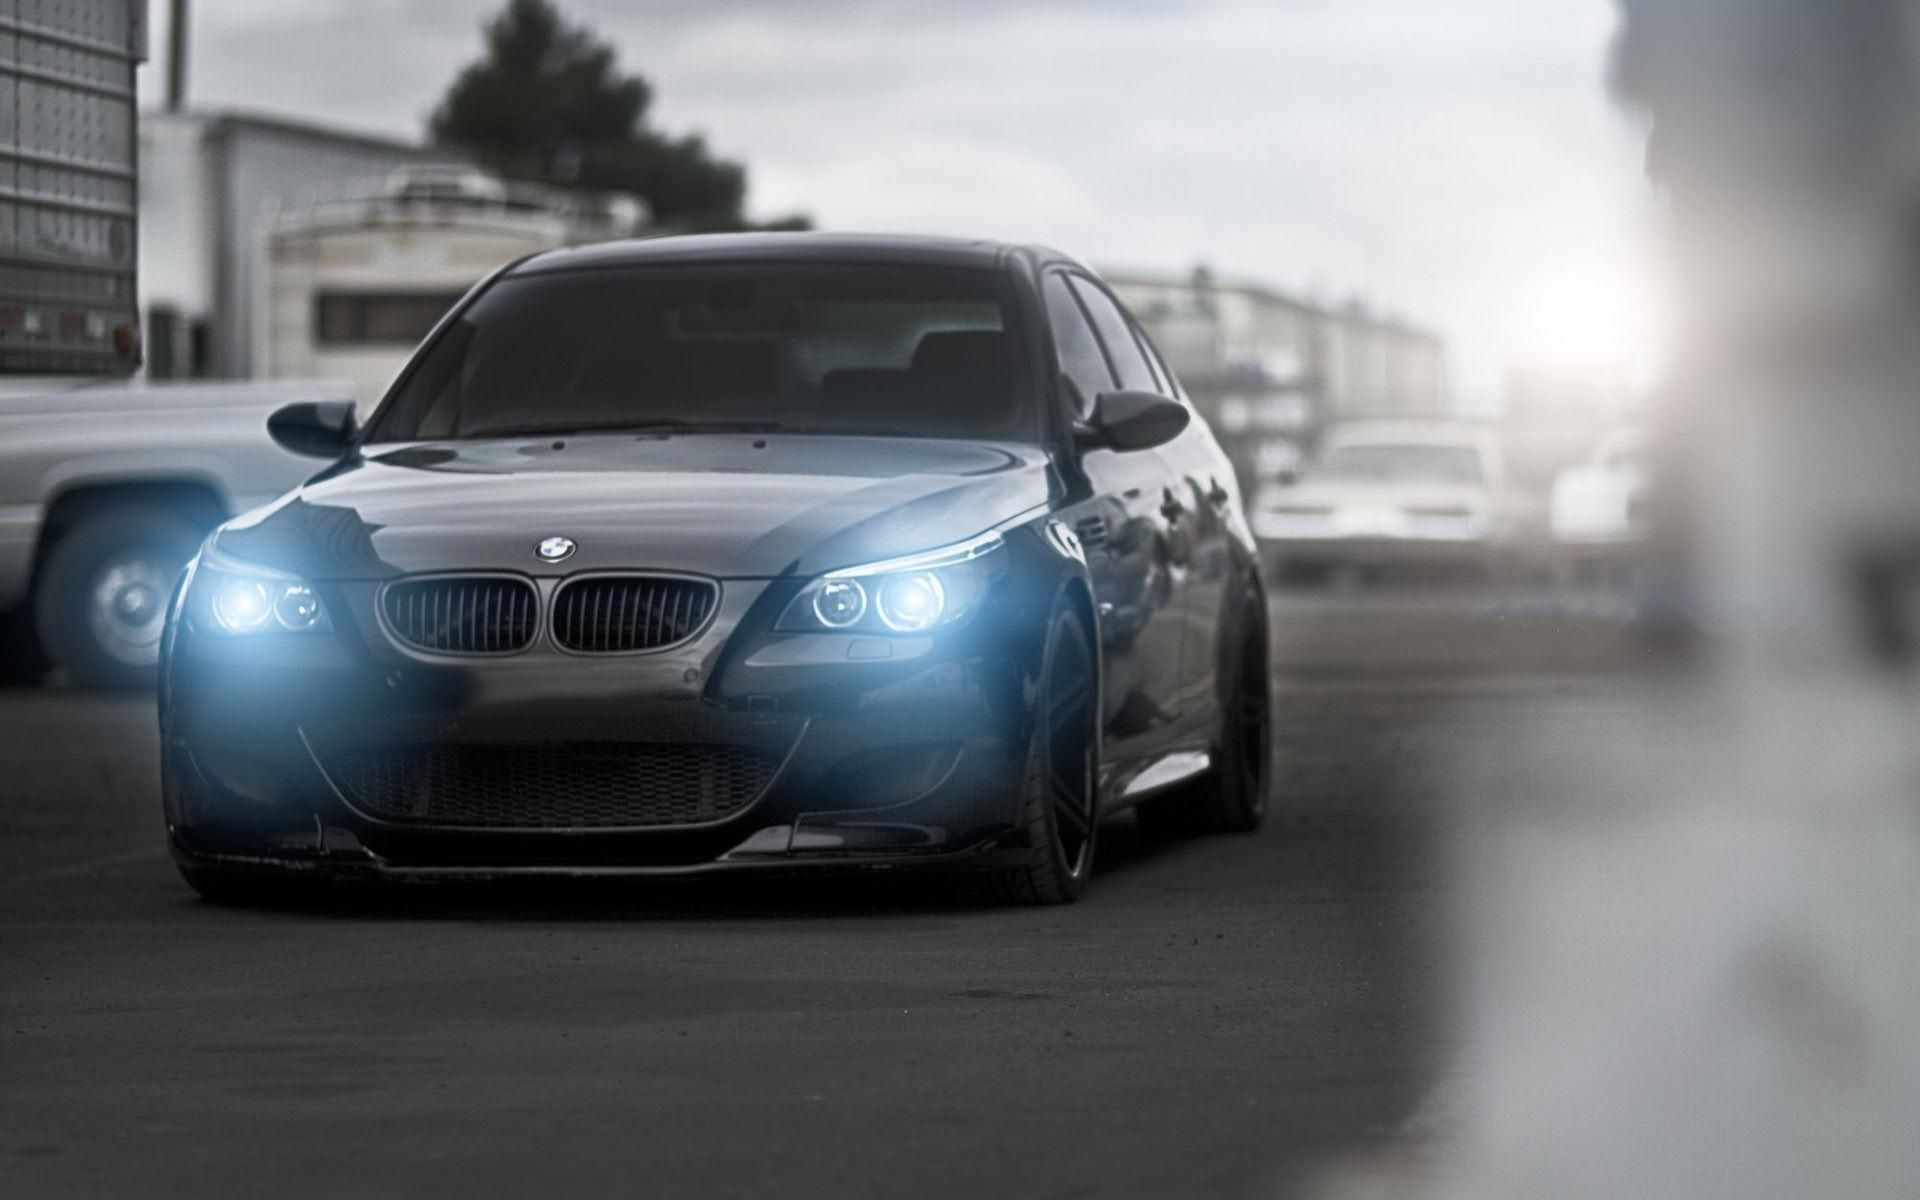 Cars bmw m3 backgrounds wallpapers 18929 full hd wallpapers desktop · download. Pin On Hd Wallpaper Cave